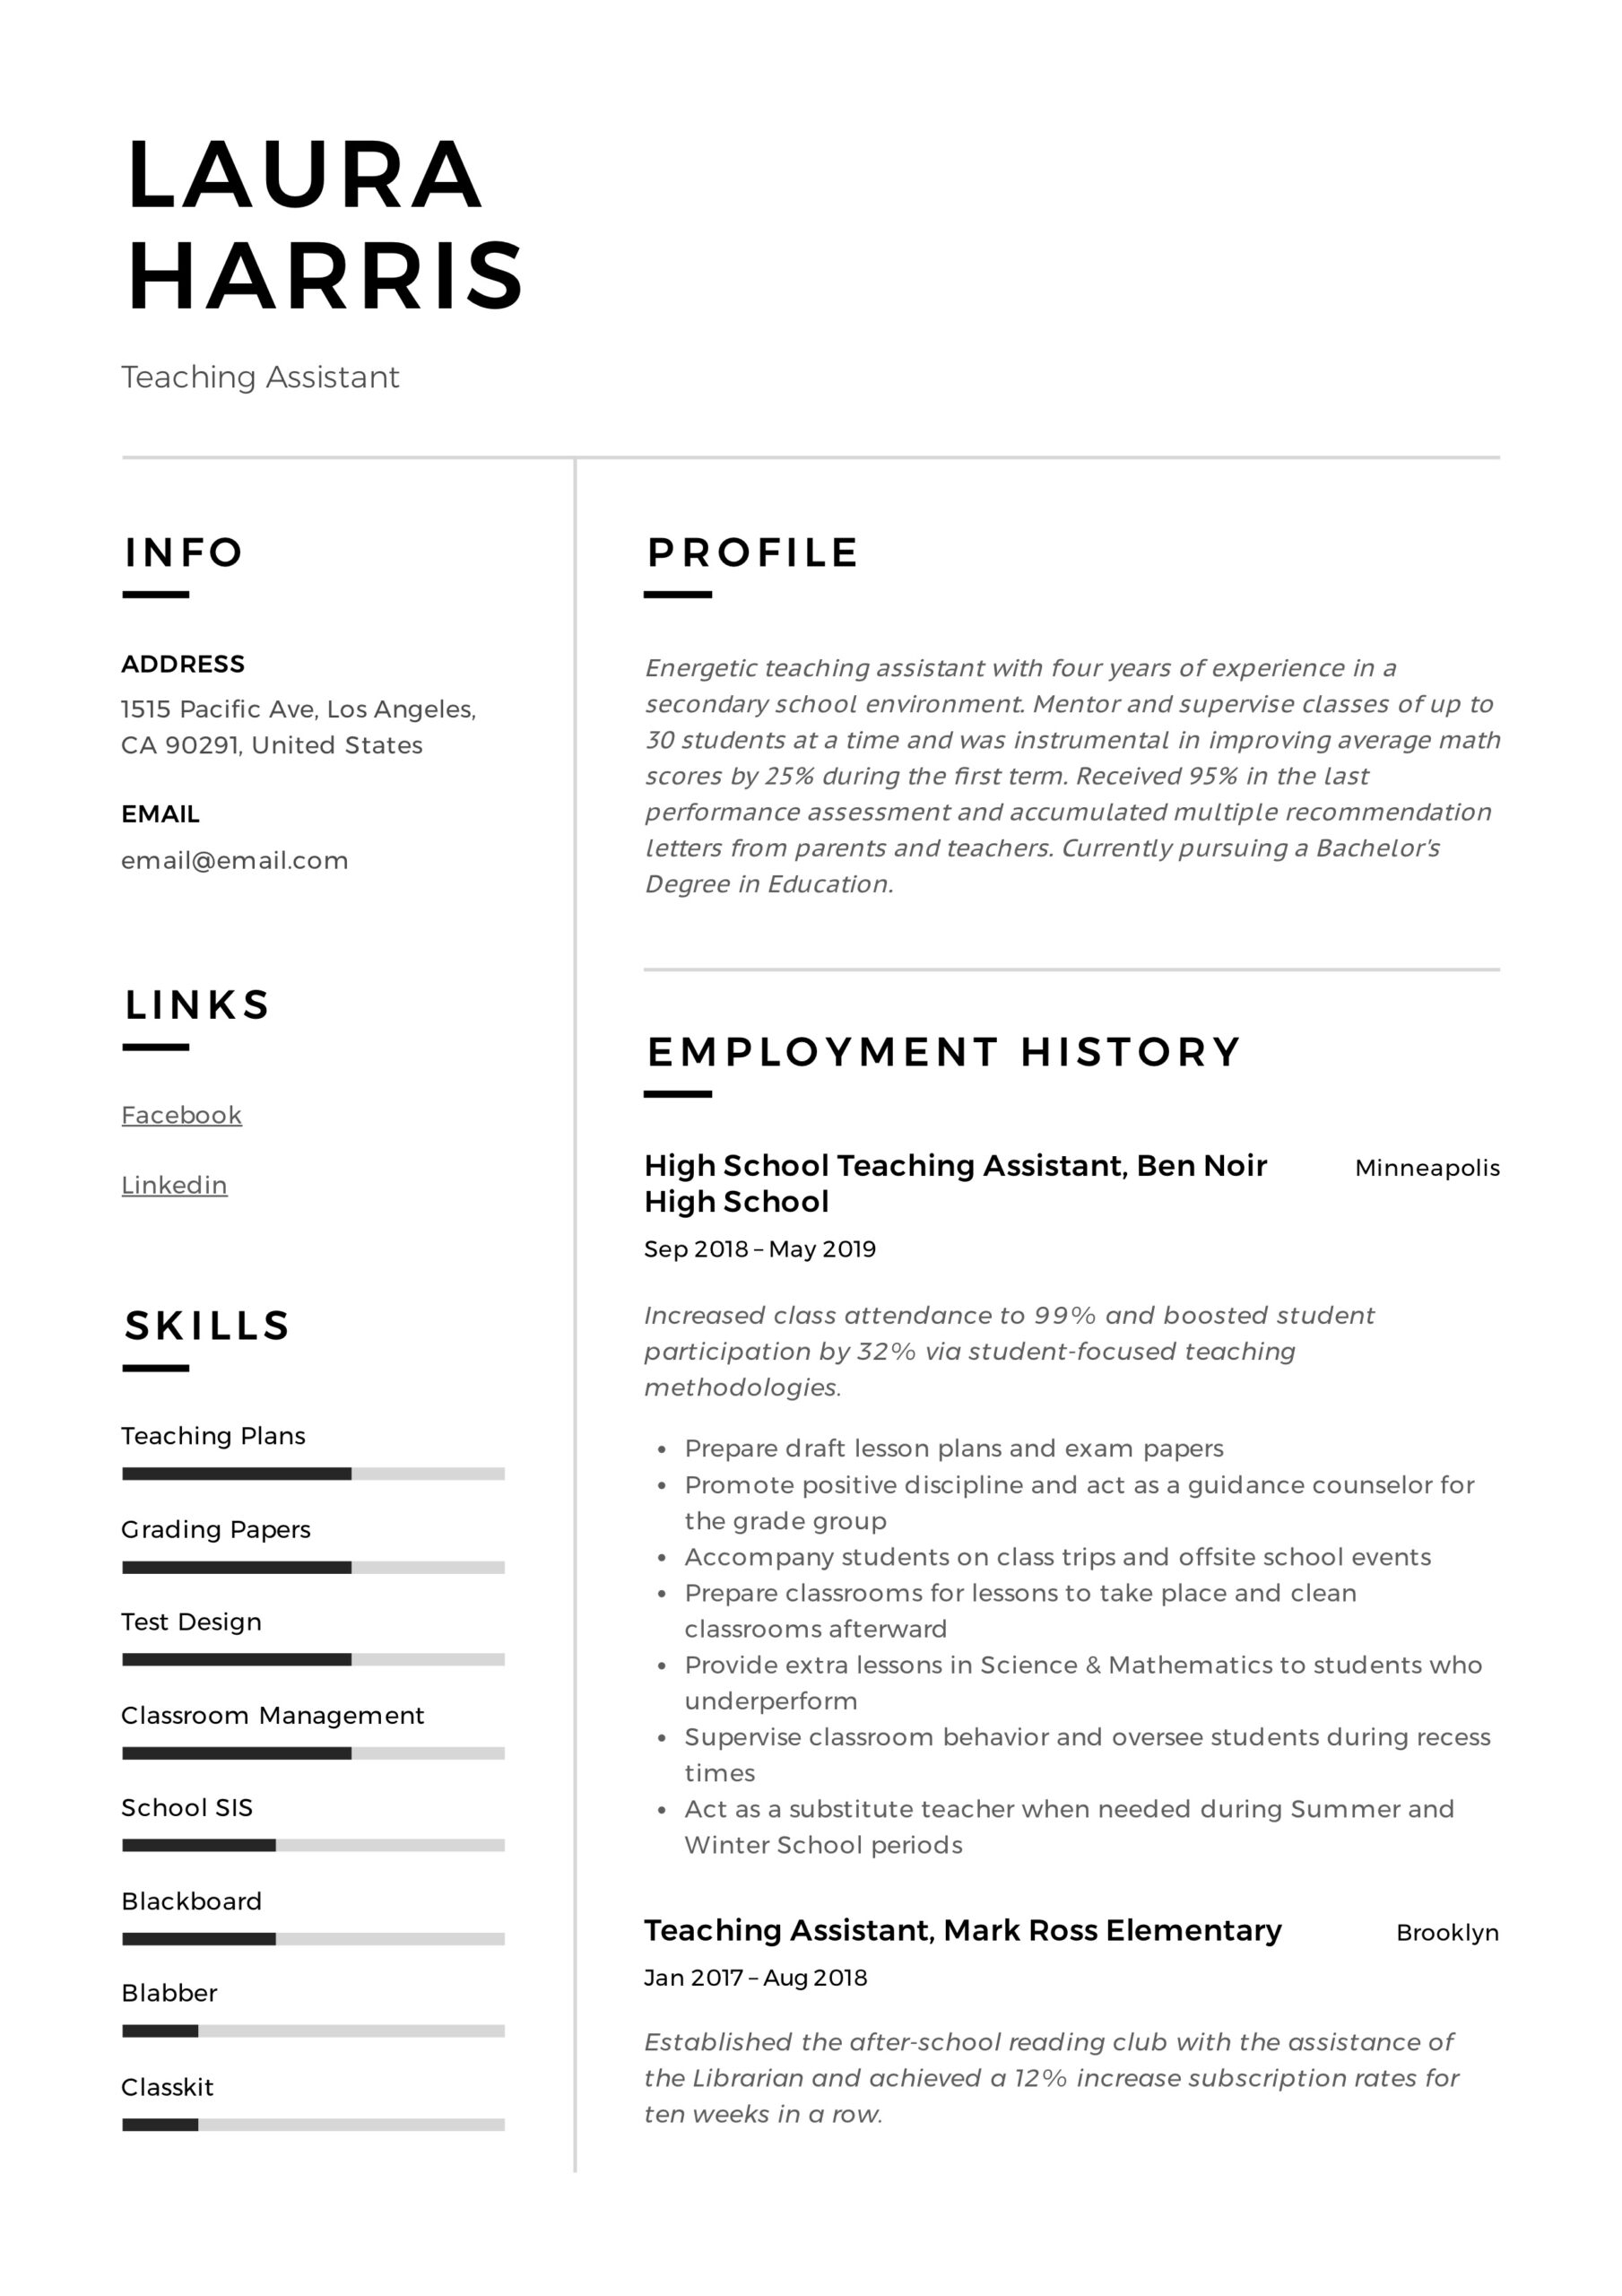 teaching assistant resume writing guide templates pdf elementary teacher template Resume Elementary Teacher Assistant Resume